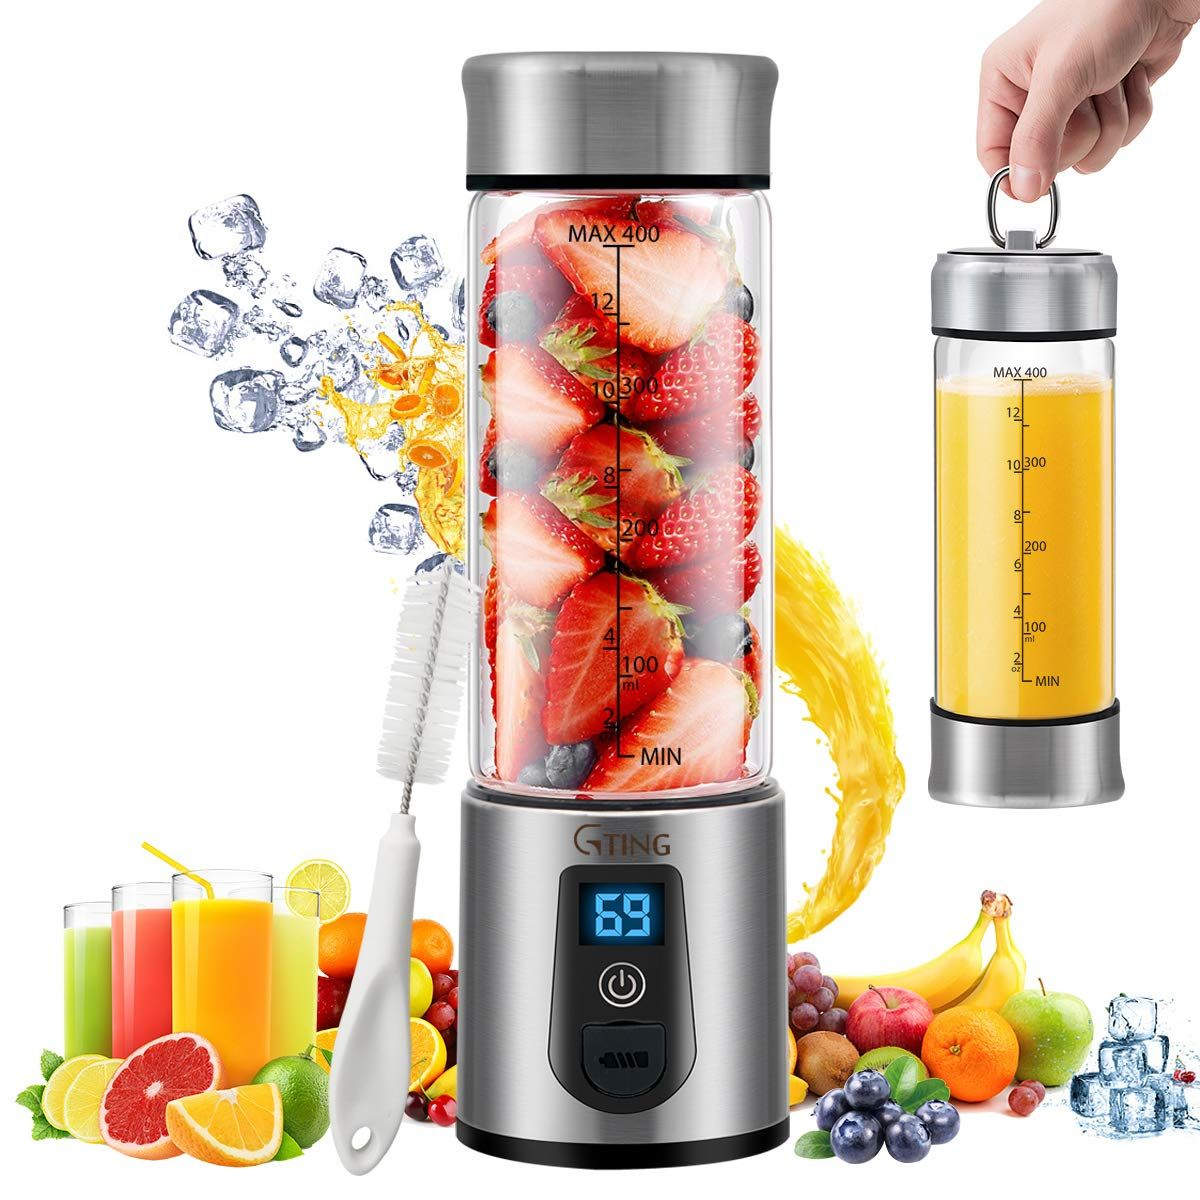 Portable Blender Personal Blender Portable Juicer Cup USB Charge 300ml Electric Fruit Mixer with 2 Blades for Home/&Travel for Juice Smoothie and Milkshake